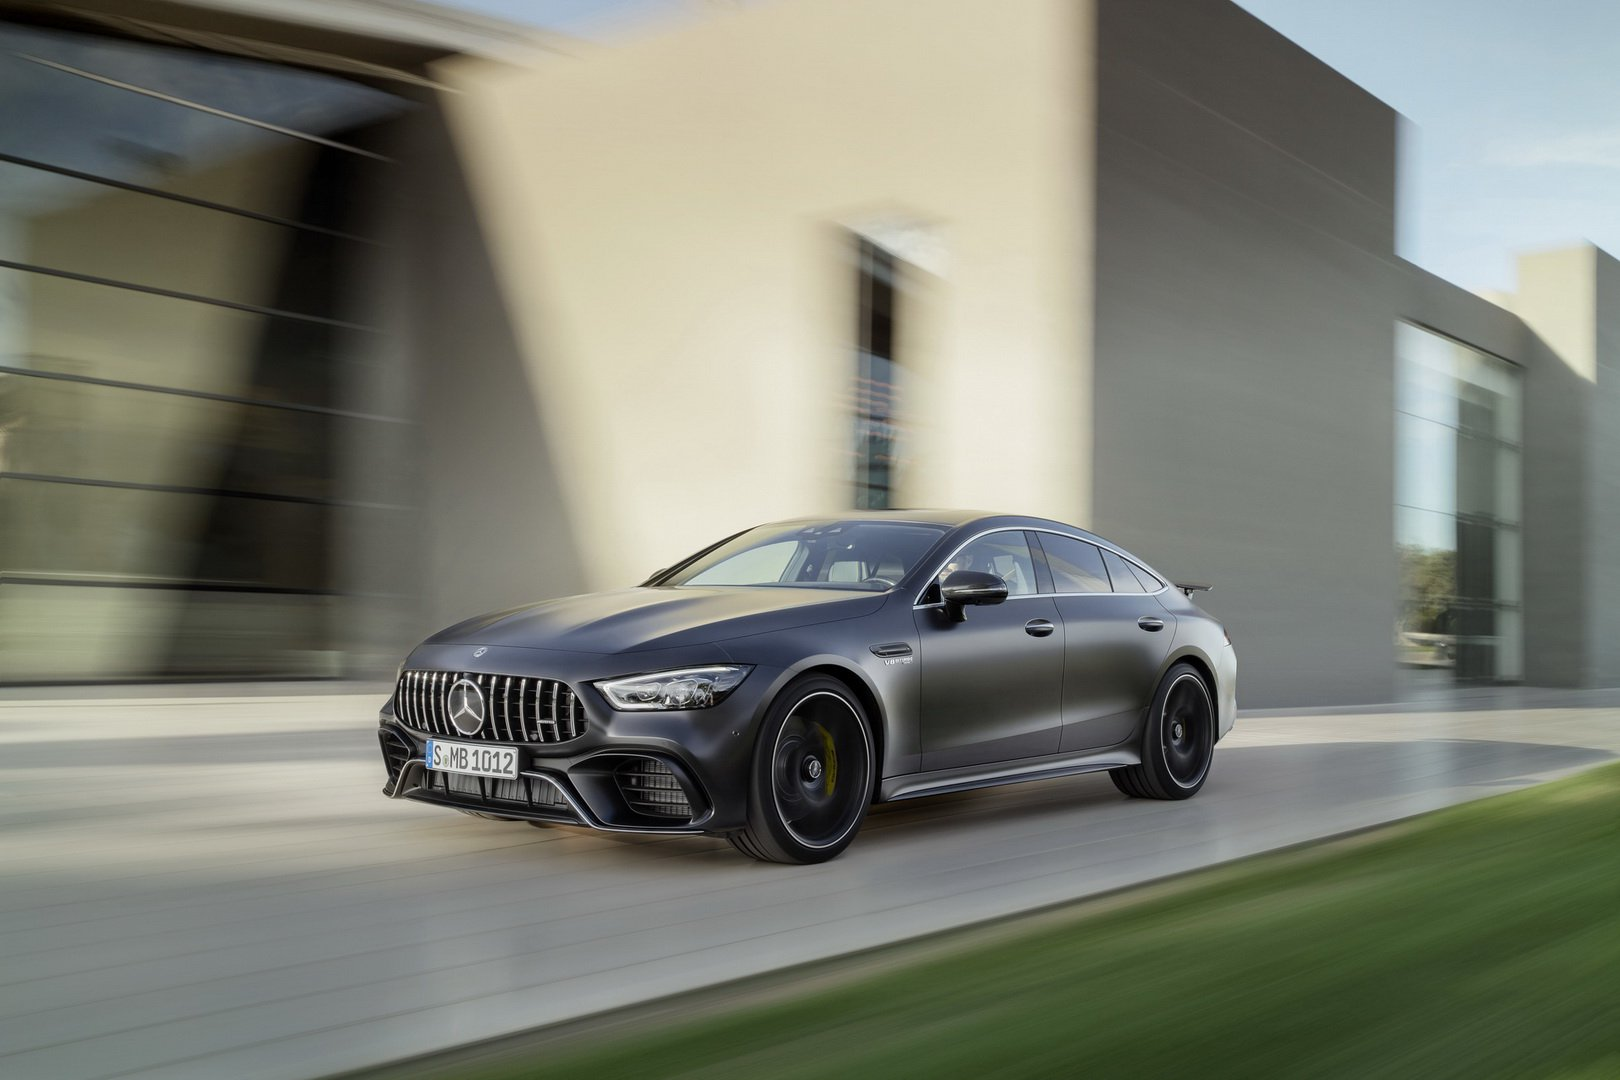 mercedes-amg-gt-4-door-coupe-lap-rap-2.jpg